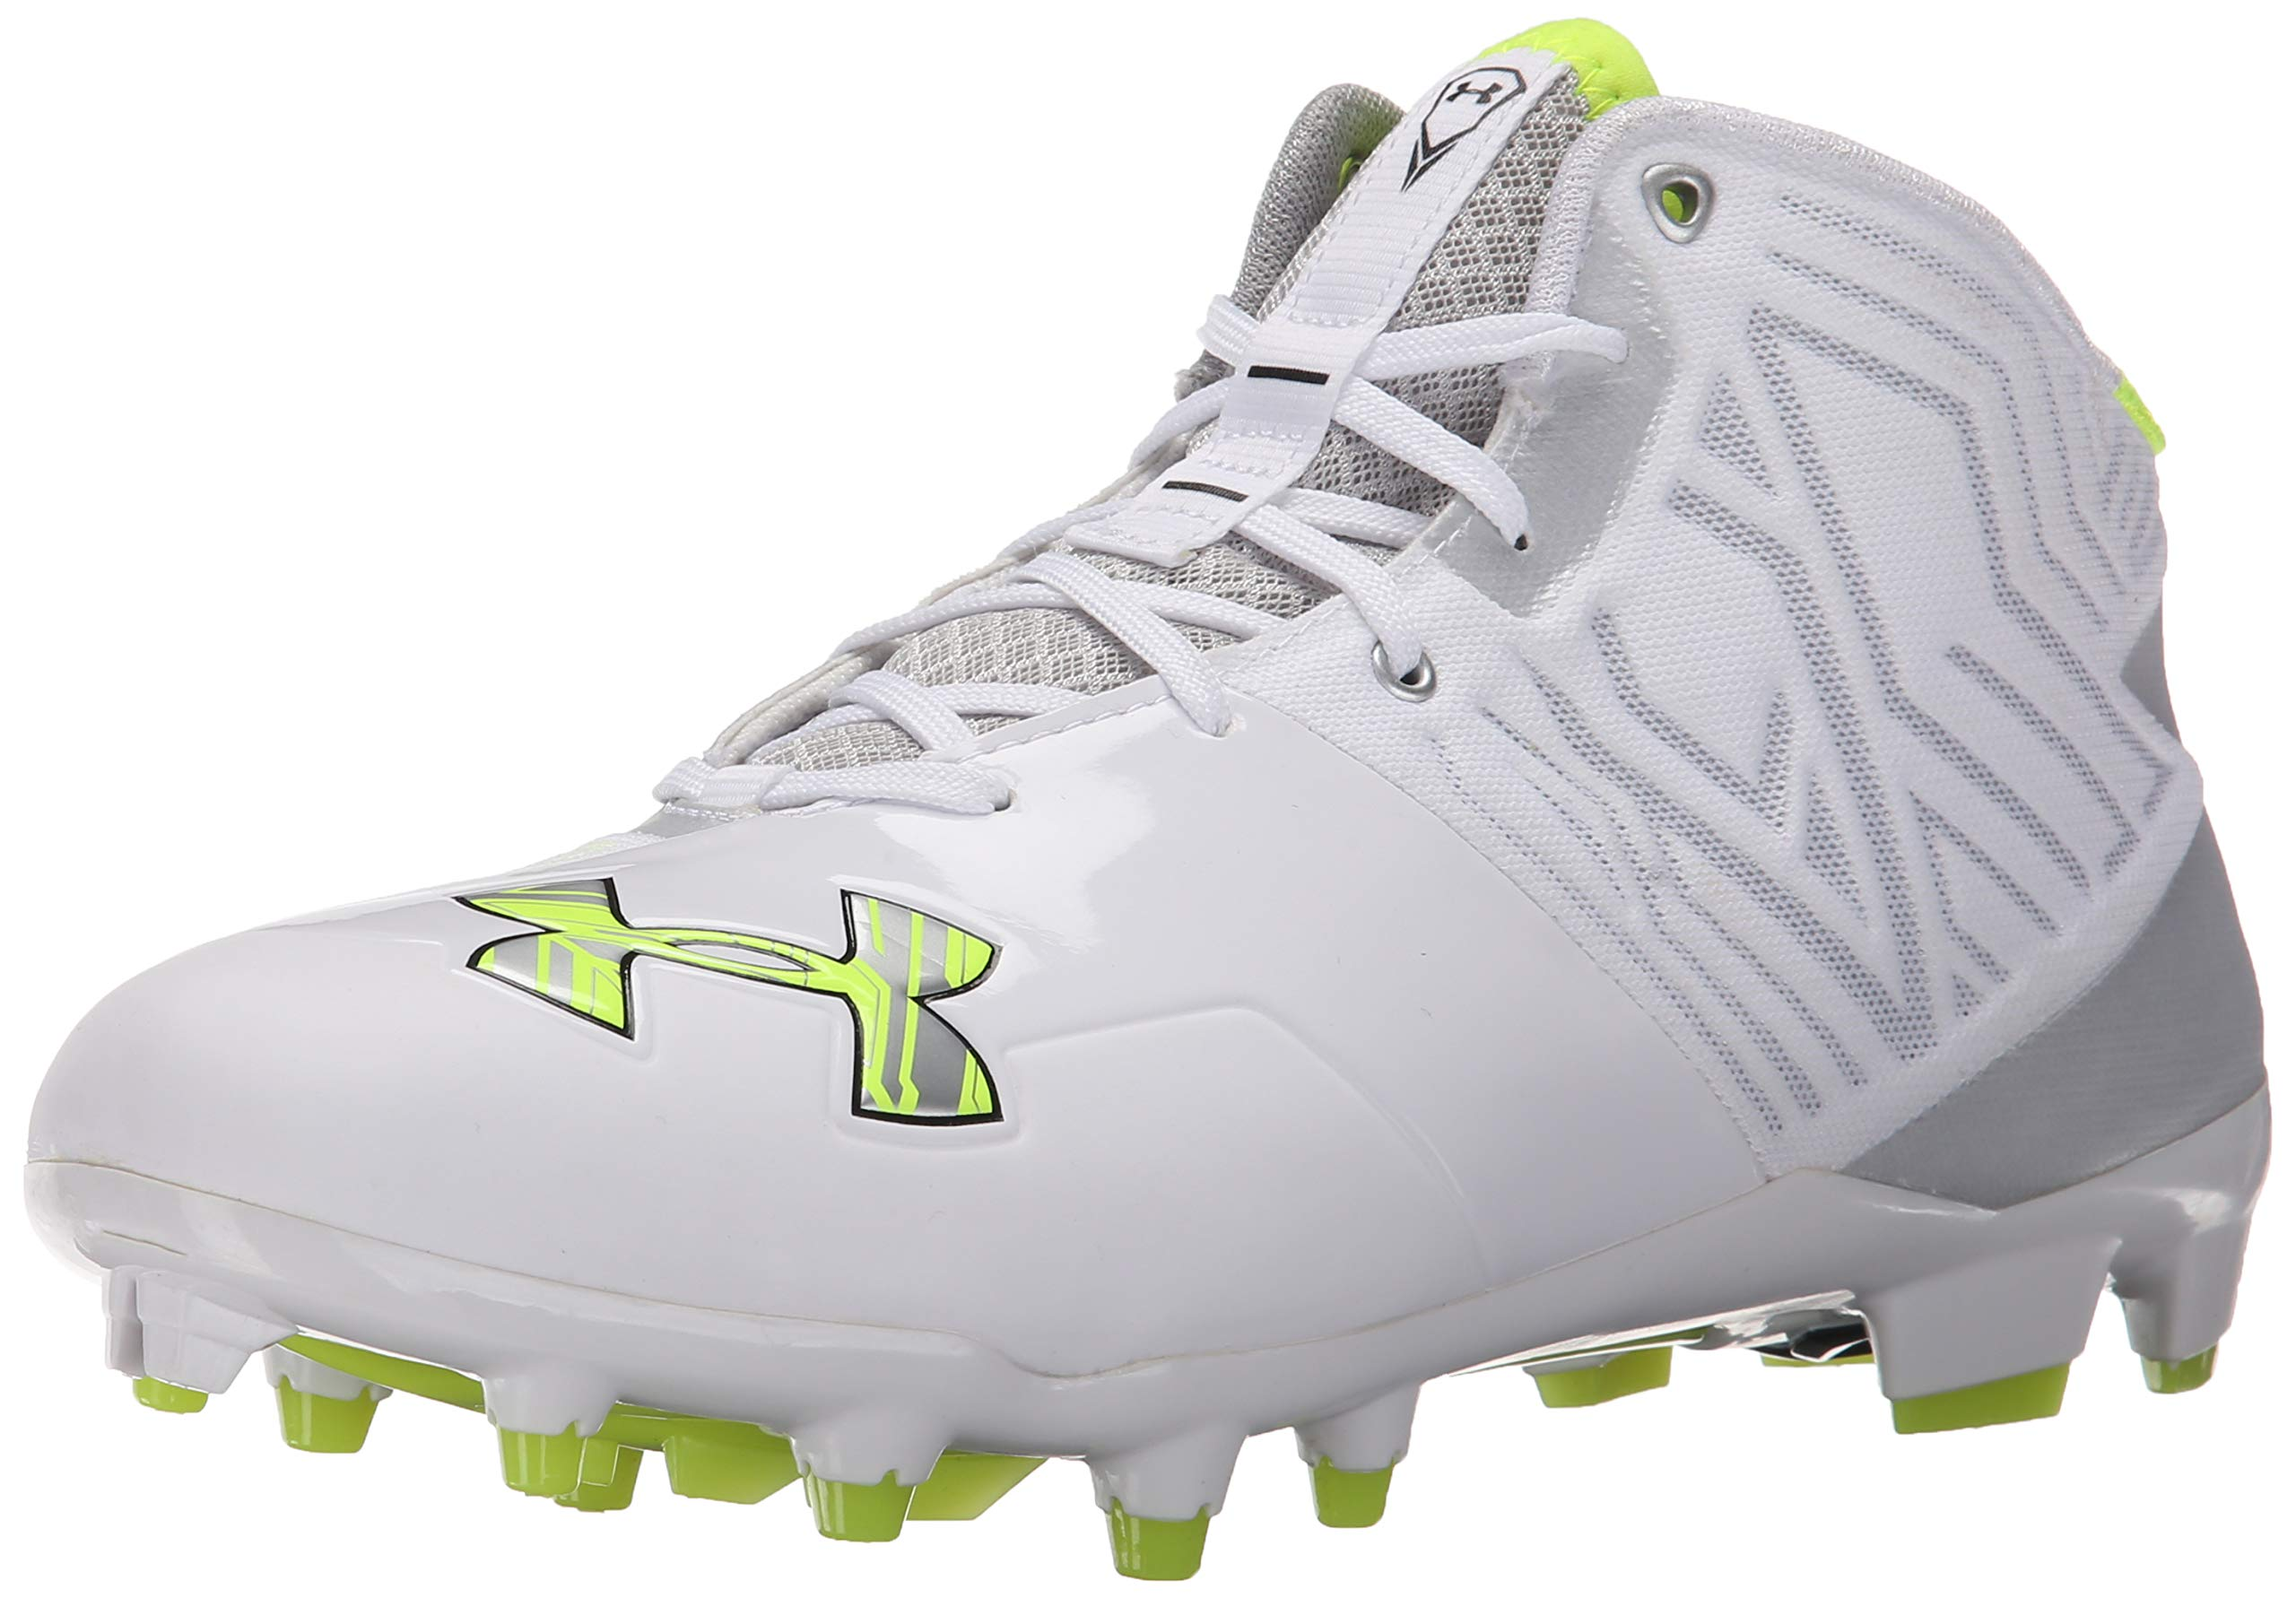 Under Armour Men's Banshee Mid MC Lacrosse Shoe, White (100)/Metallic Silver, 6.5 M US